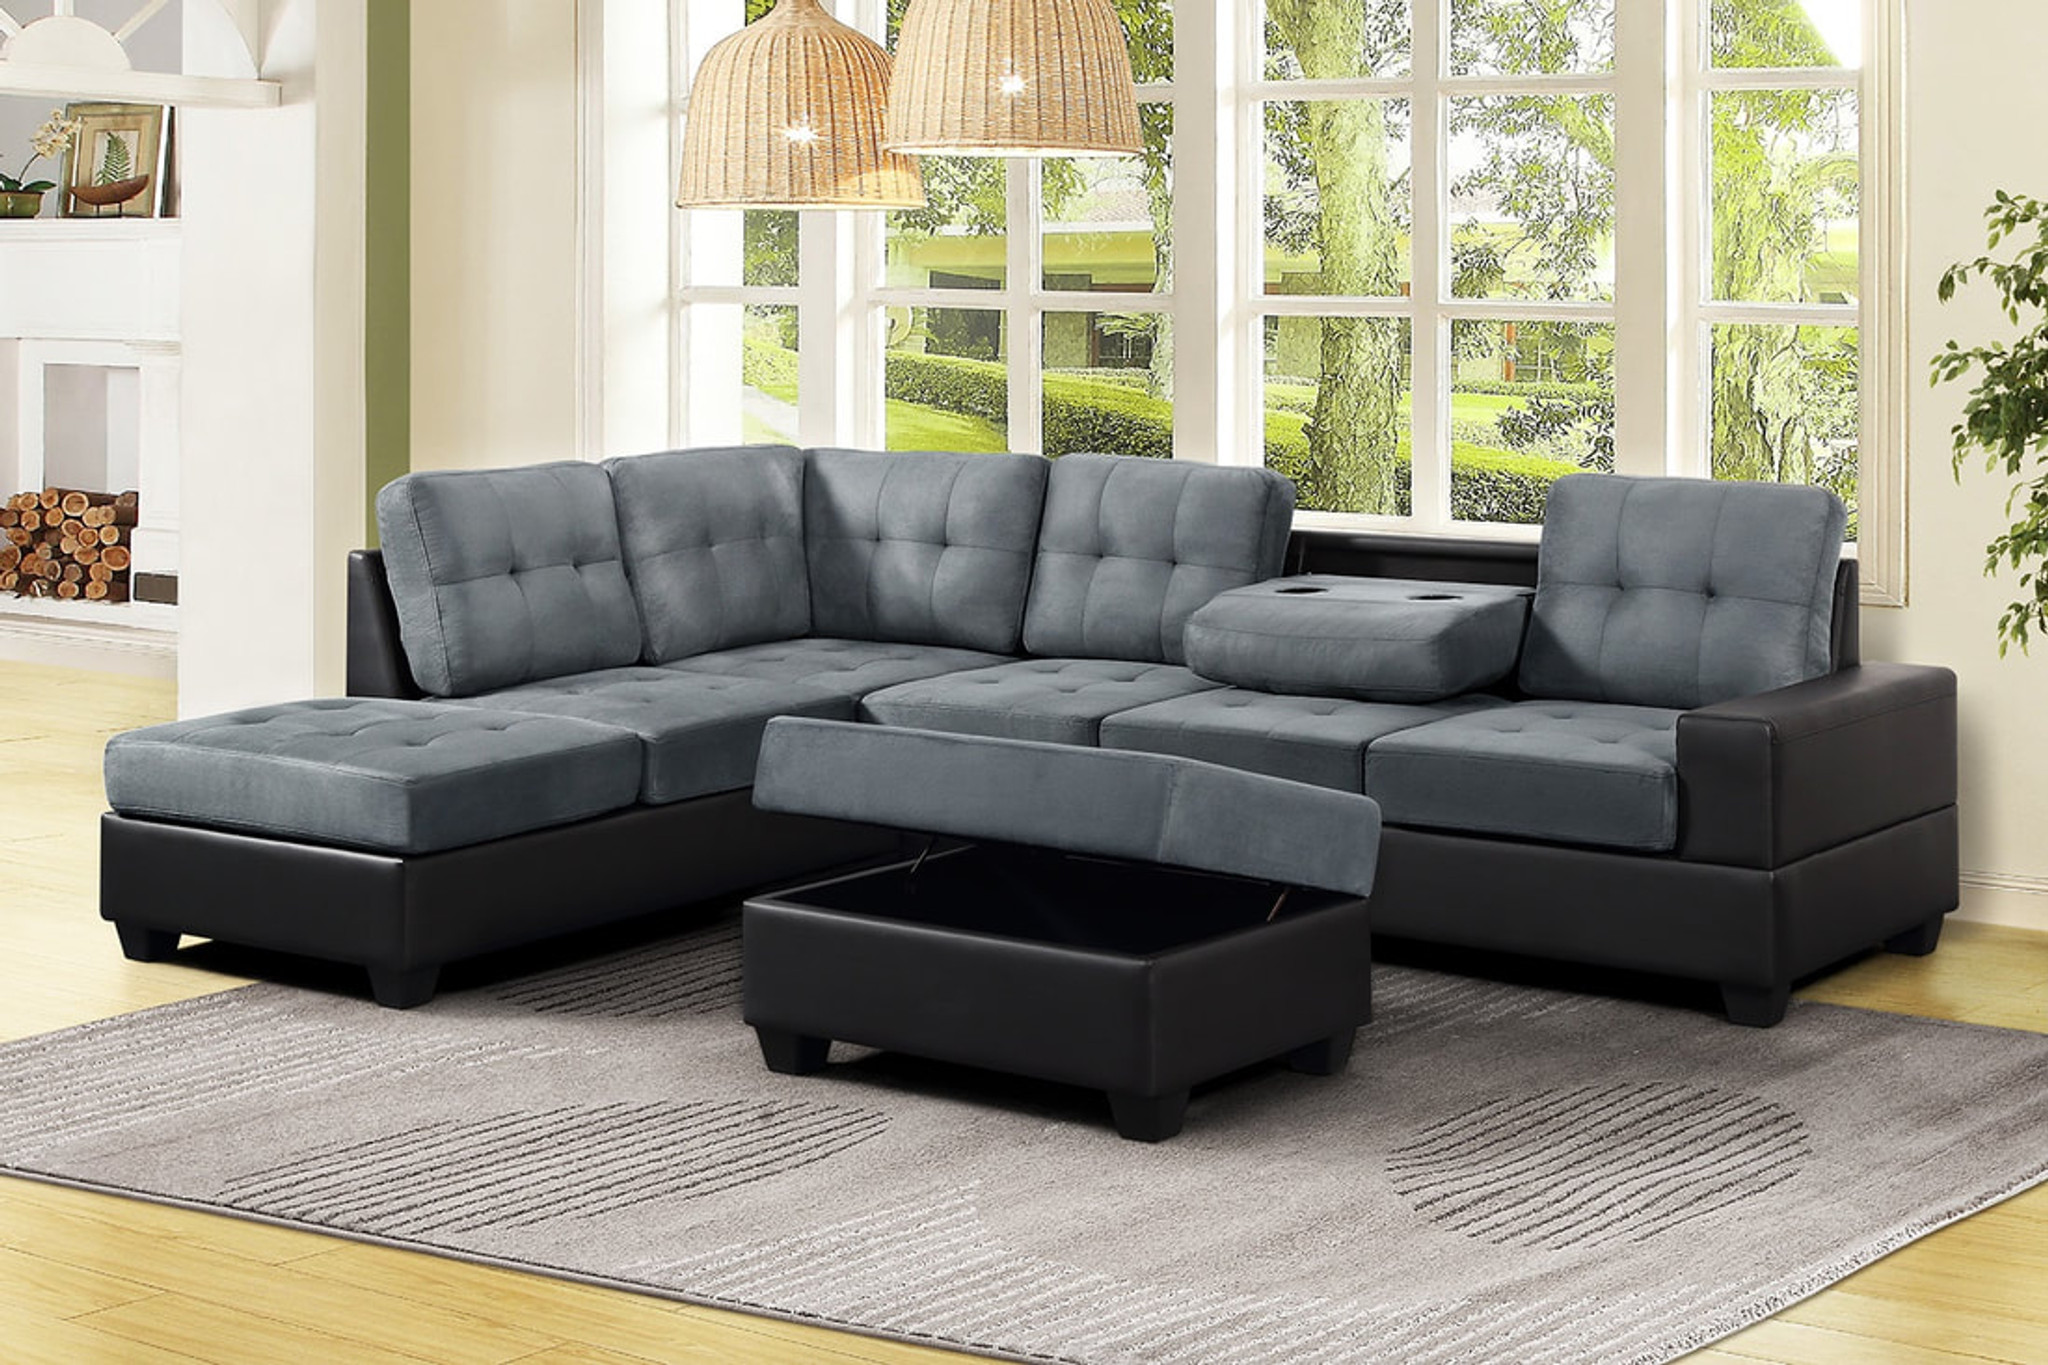 Remarkable 3 Pcs Heights Thick Fabric Bonded Leather Sectional With Drop Down Cup Holder With Ottoman In Gray Theyellowbook Wood Chair Design Ideas Theyellowbookinfo